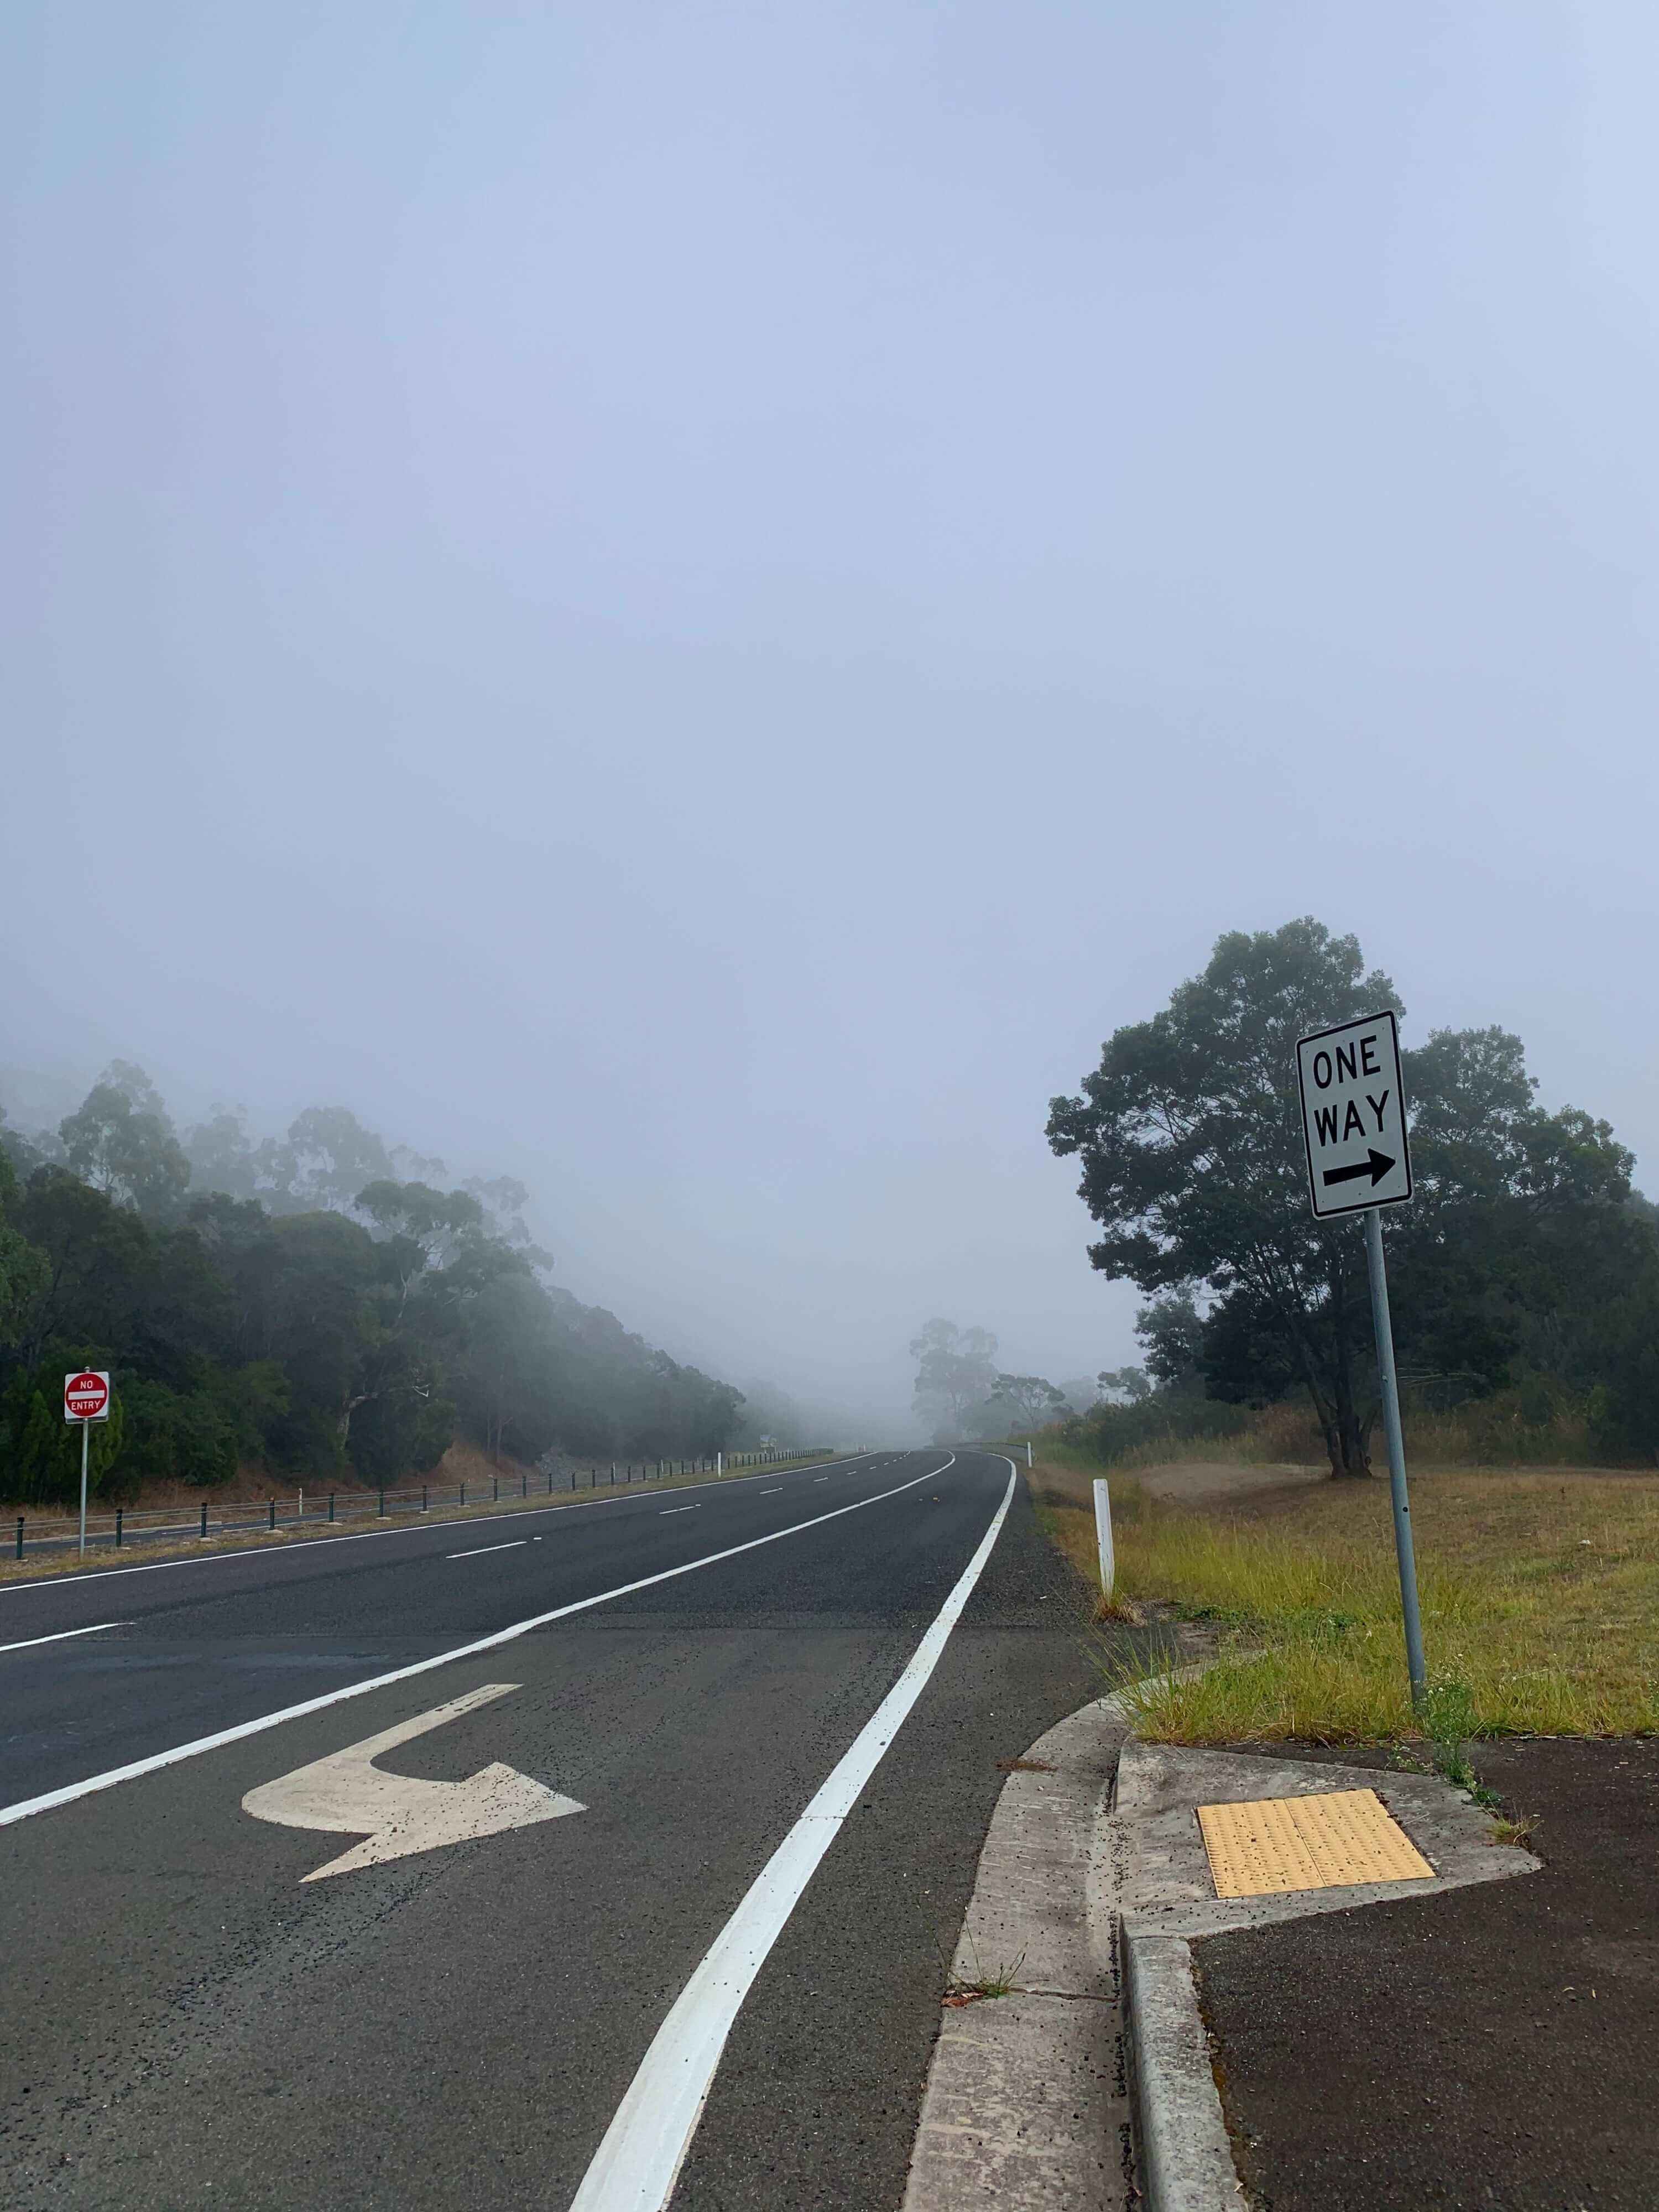 a street with a one way sign pointing to the left side of the photo with a dense fog in the distance